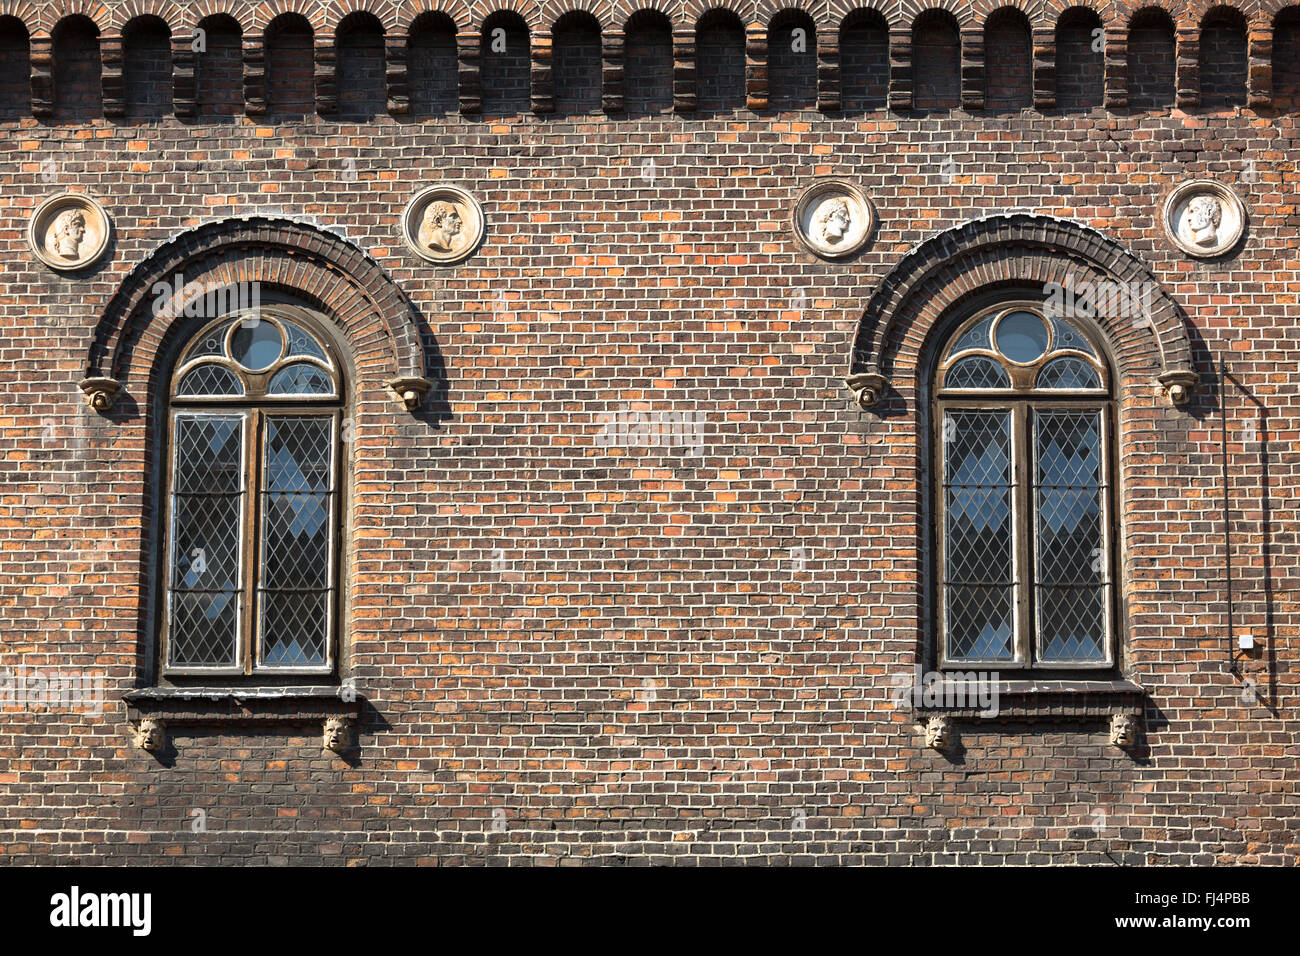 Cross hatch styled windows on a brick building - Krakow, Poland - Stock Image